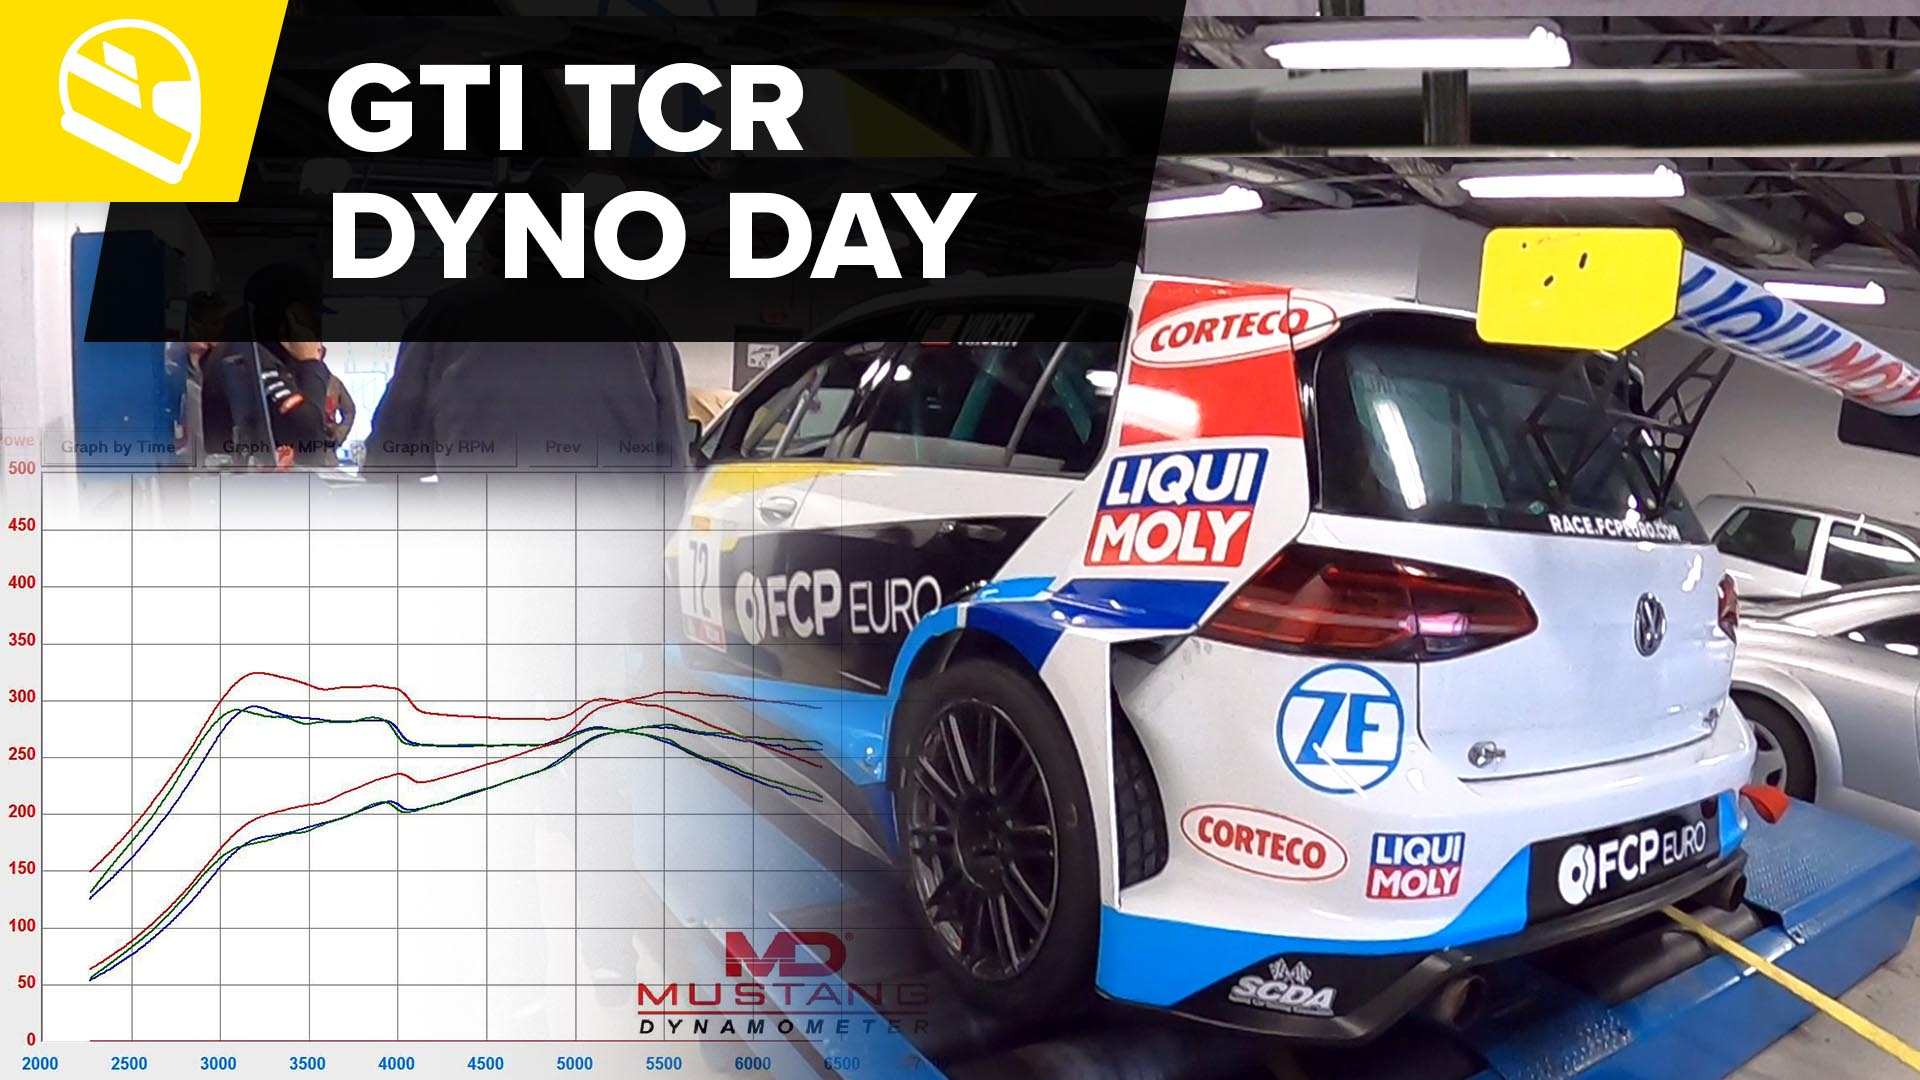 Motorsport Mondays - TCR Teardown: Dyno Day